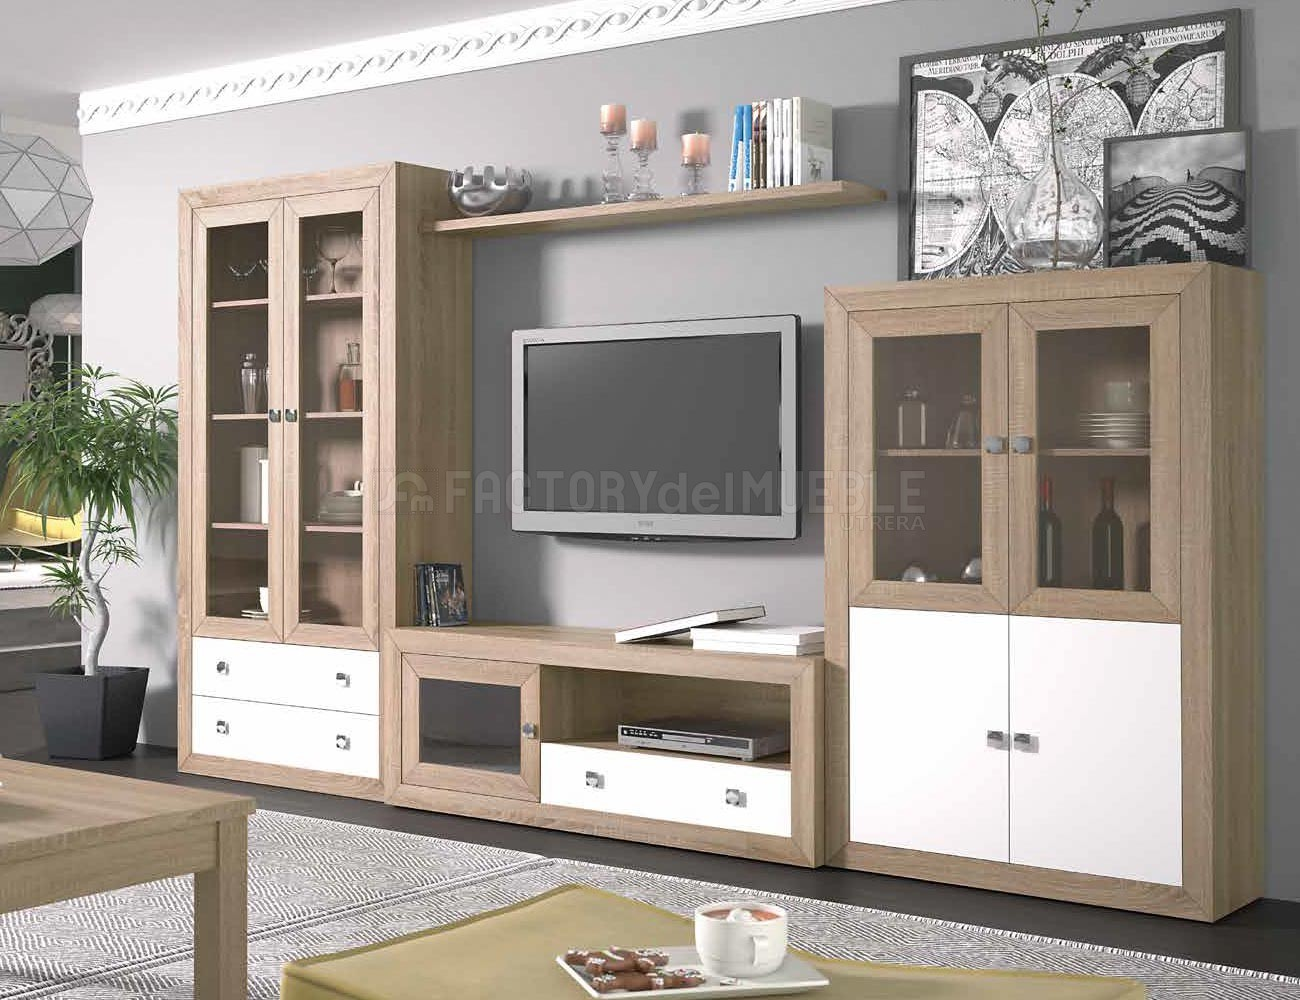 Mueble Colonial Blanco Mueble De Salon Colonial Moderno En Cambrian Con Blanco